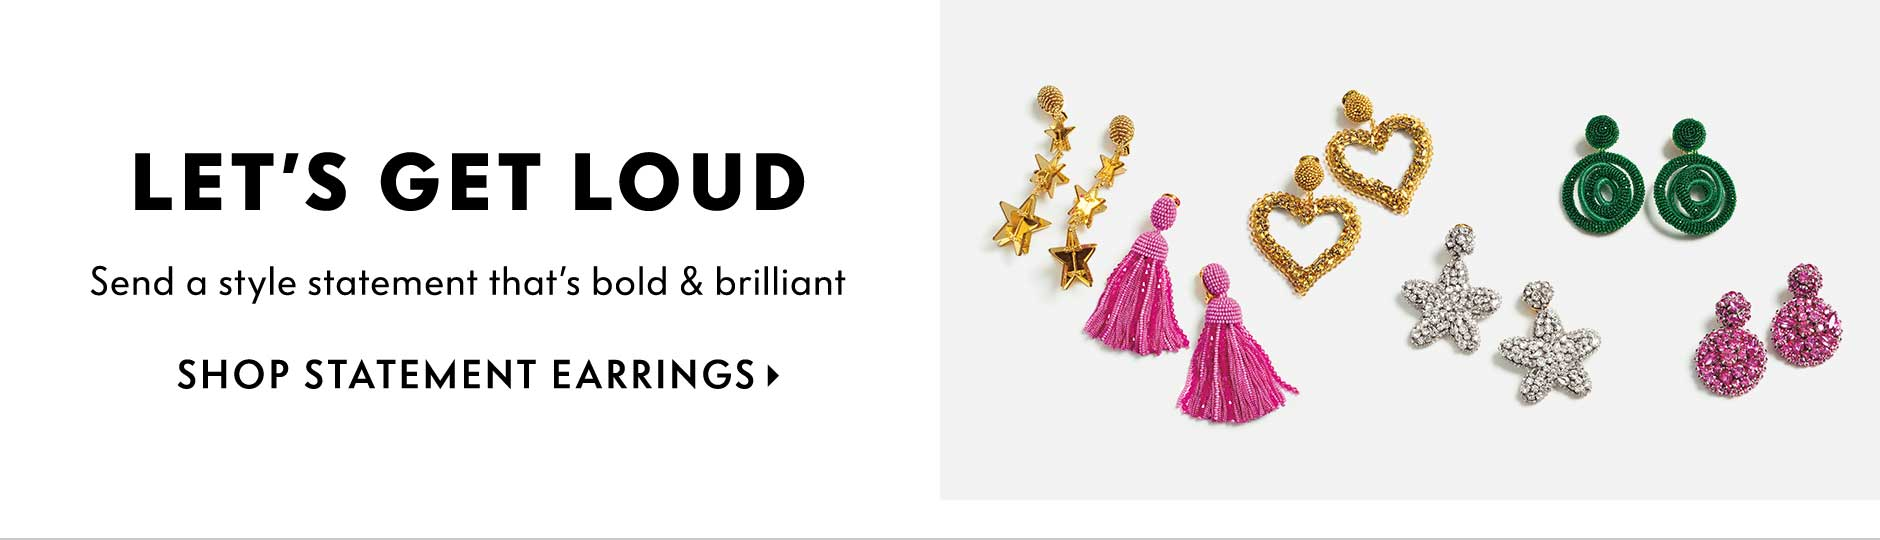 Let's Get Loud - Send a style statement that?s bold & brilliant